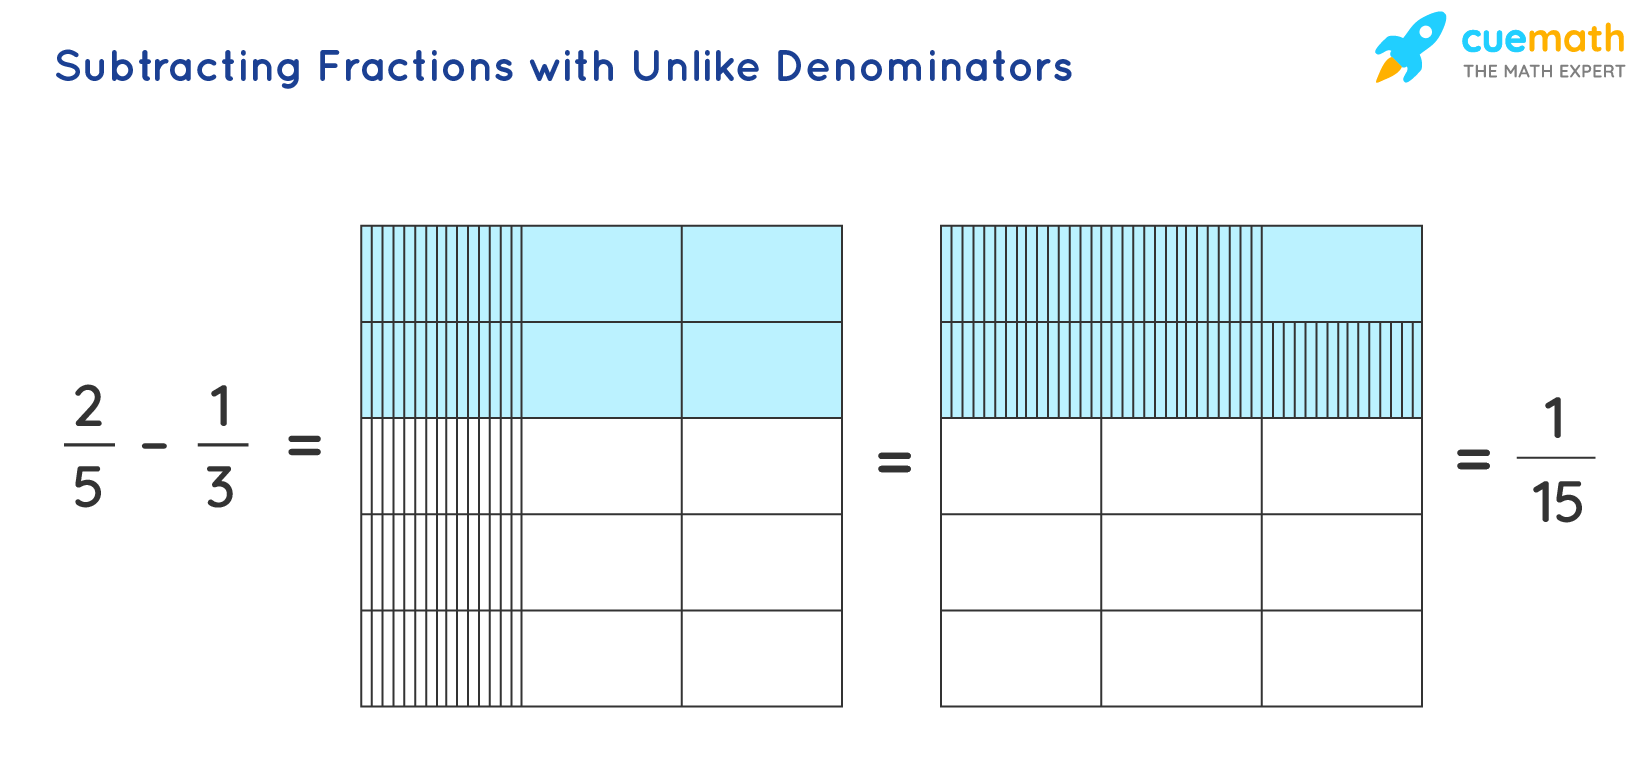 Subtraction of Fractions with Different Denominators